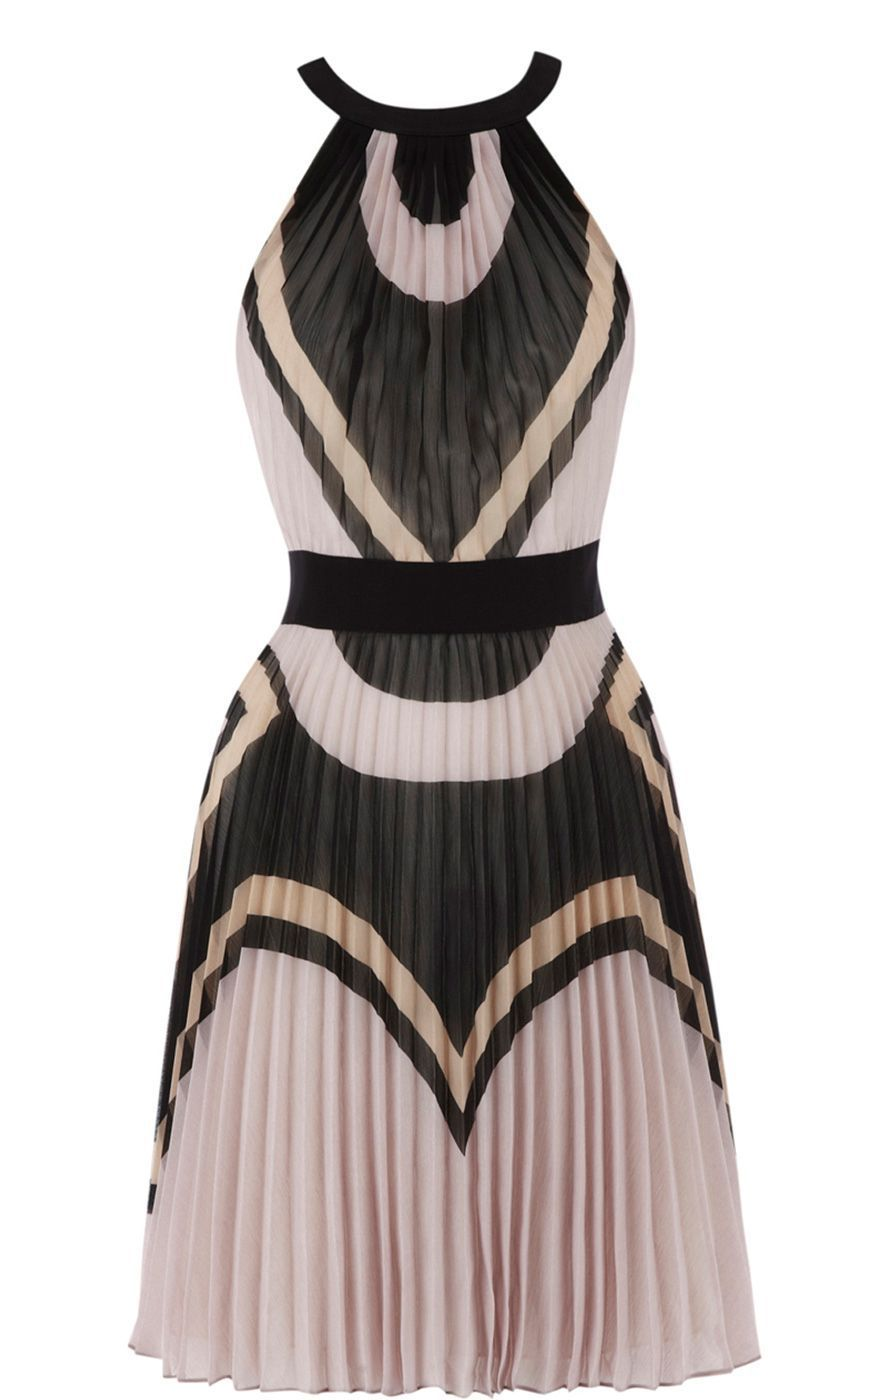 Karen Millen  Deco Colourblock Pleated Dress  £175.00  Cinches in the waist and balances out proportions.